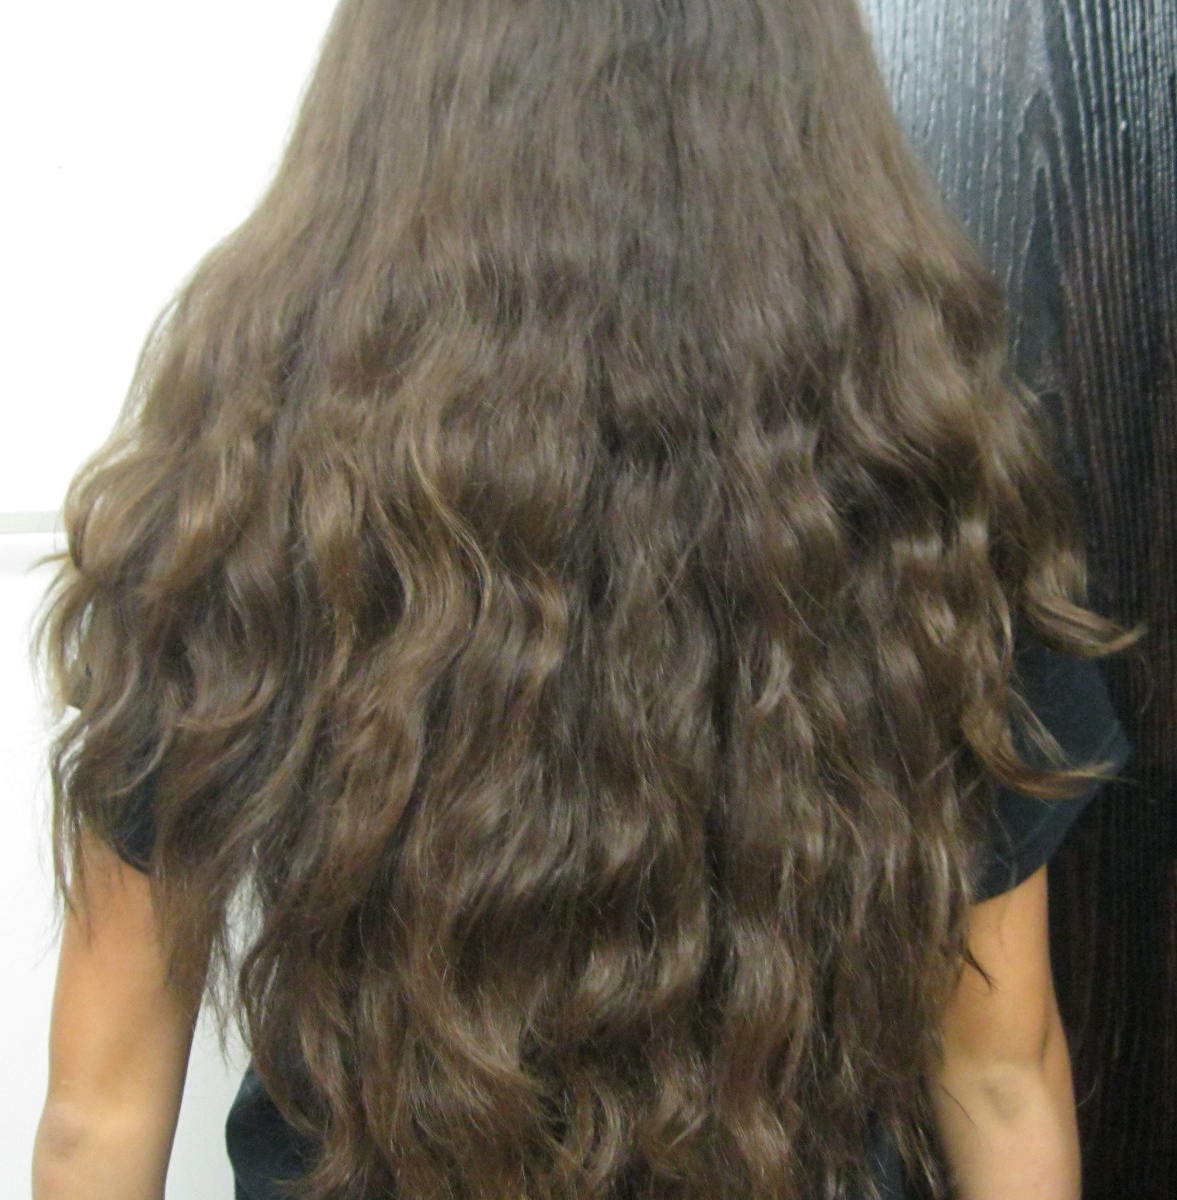 Wavy Hairstyles: Best Cuts And Styles For Long, Naturally Wavy Hair Intended For Popular Long Layered Waves Hairstyles (View 6 of 20)